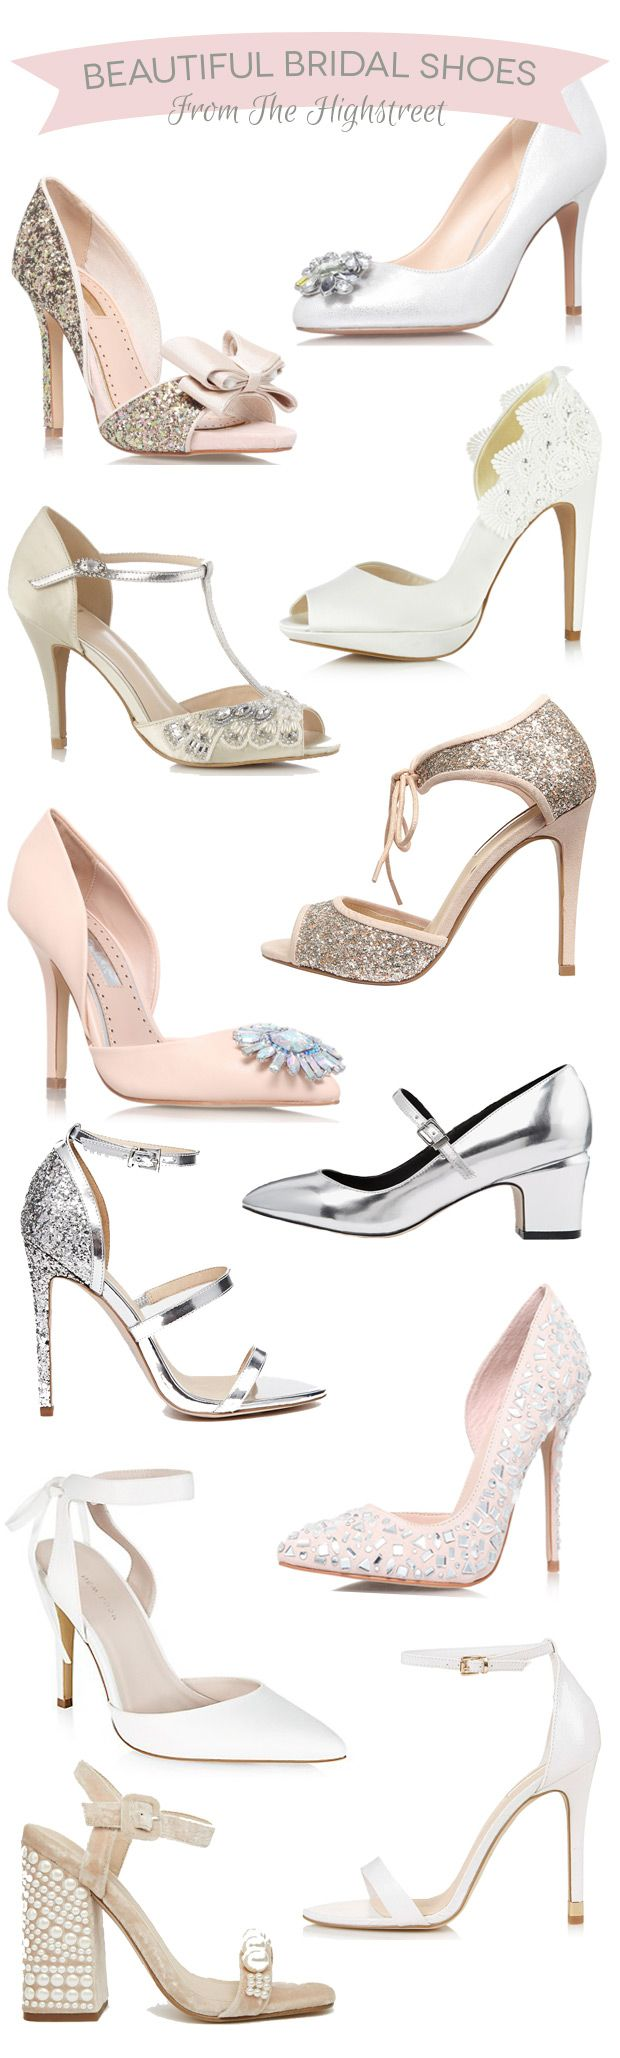 Beautiful Budget Friendly Bridal Shoes from the Highstreet | www.onefabday.com